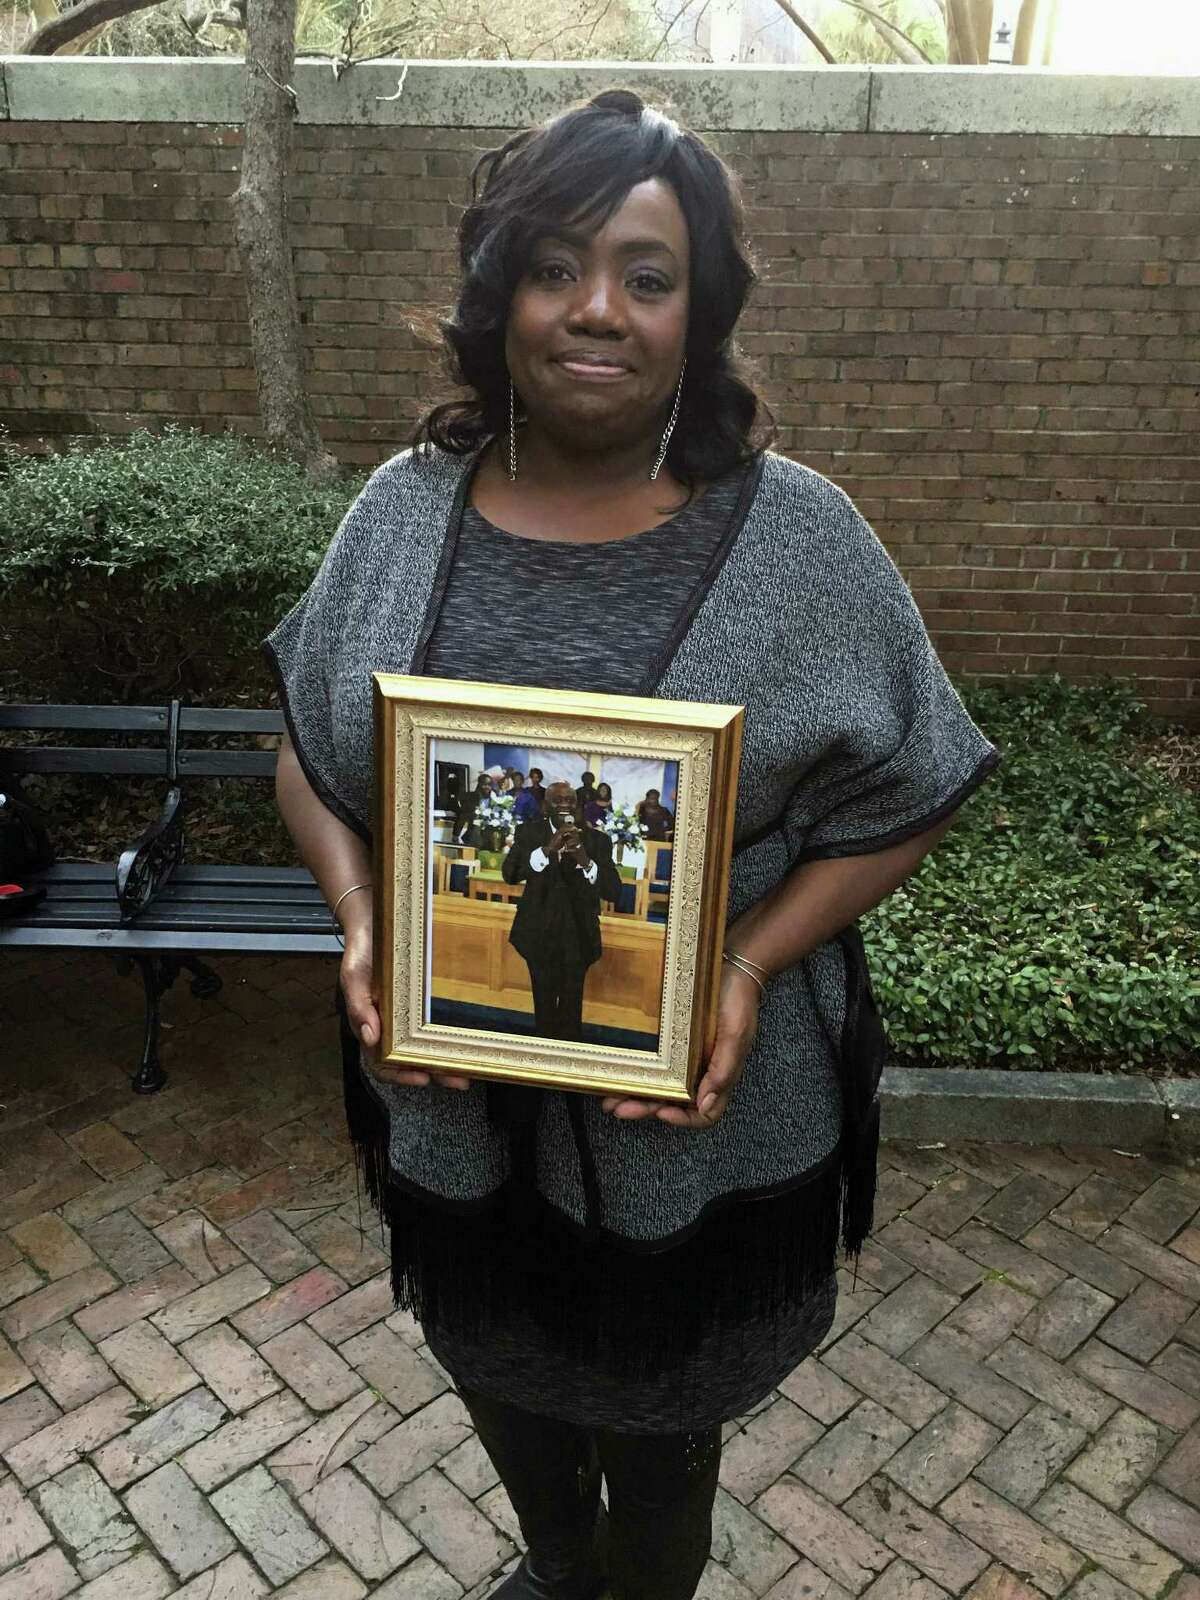 Rose Simmons, the daughter of Rev. Daniel Simmons, Sr., poses with a photograph of her father outside of U.S. District Court in Charleston, S.C. on Jan. 11, 2017, hours after Judge Richard Gergel formally confirmed jurors sentenced Dylann Roof to death. Simmons said Roof killed her father and eight others at Emanuel AME Church on June 17, 2015.